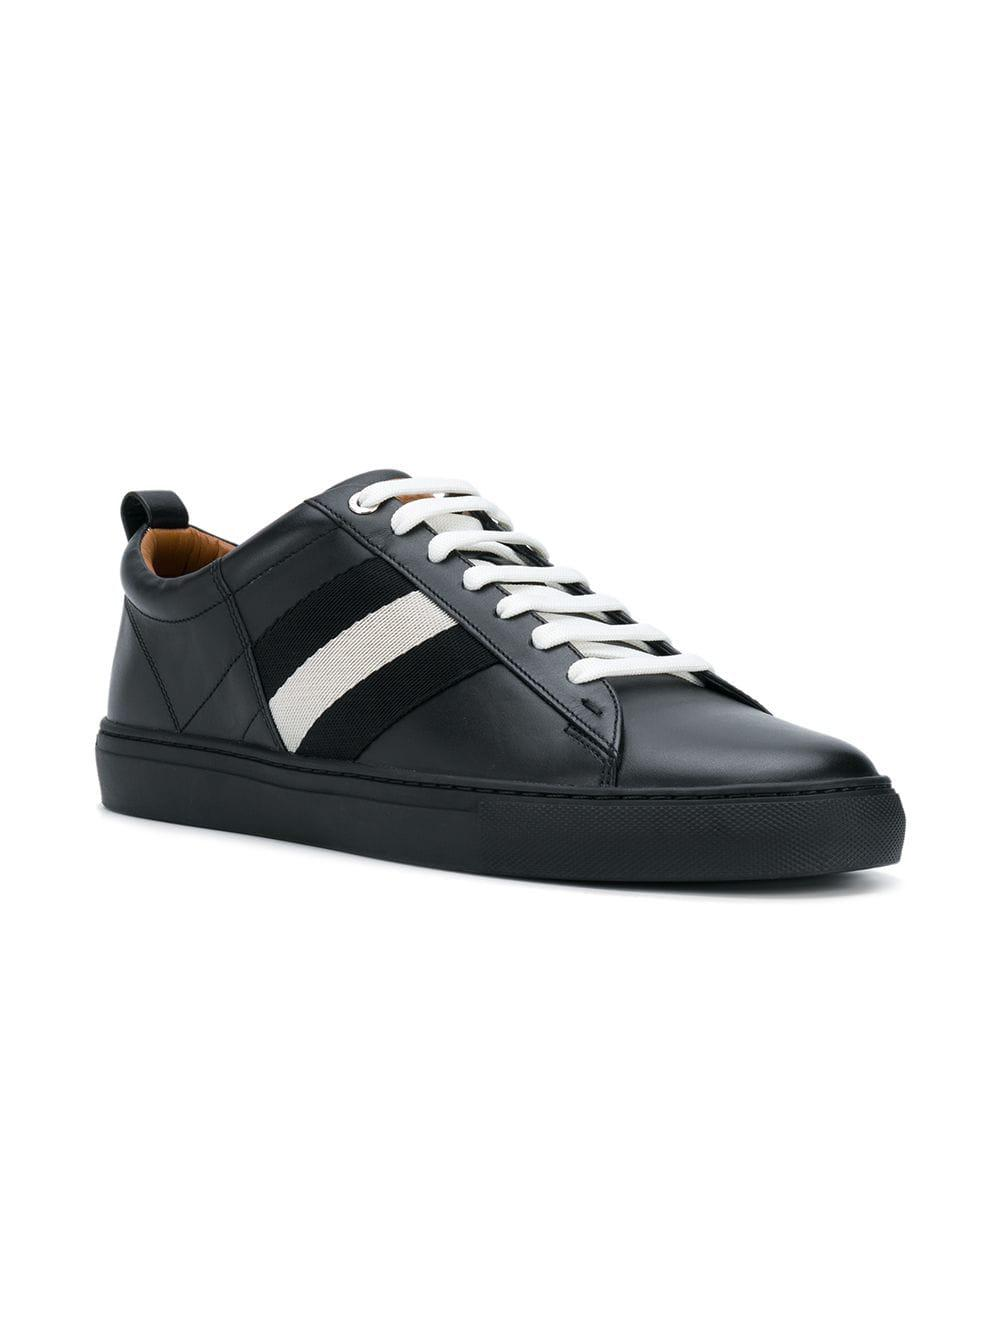 29ad0ade62 Bally - Black Contrast Lace-up Sneakers for Men - Lyst. View fullscreen